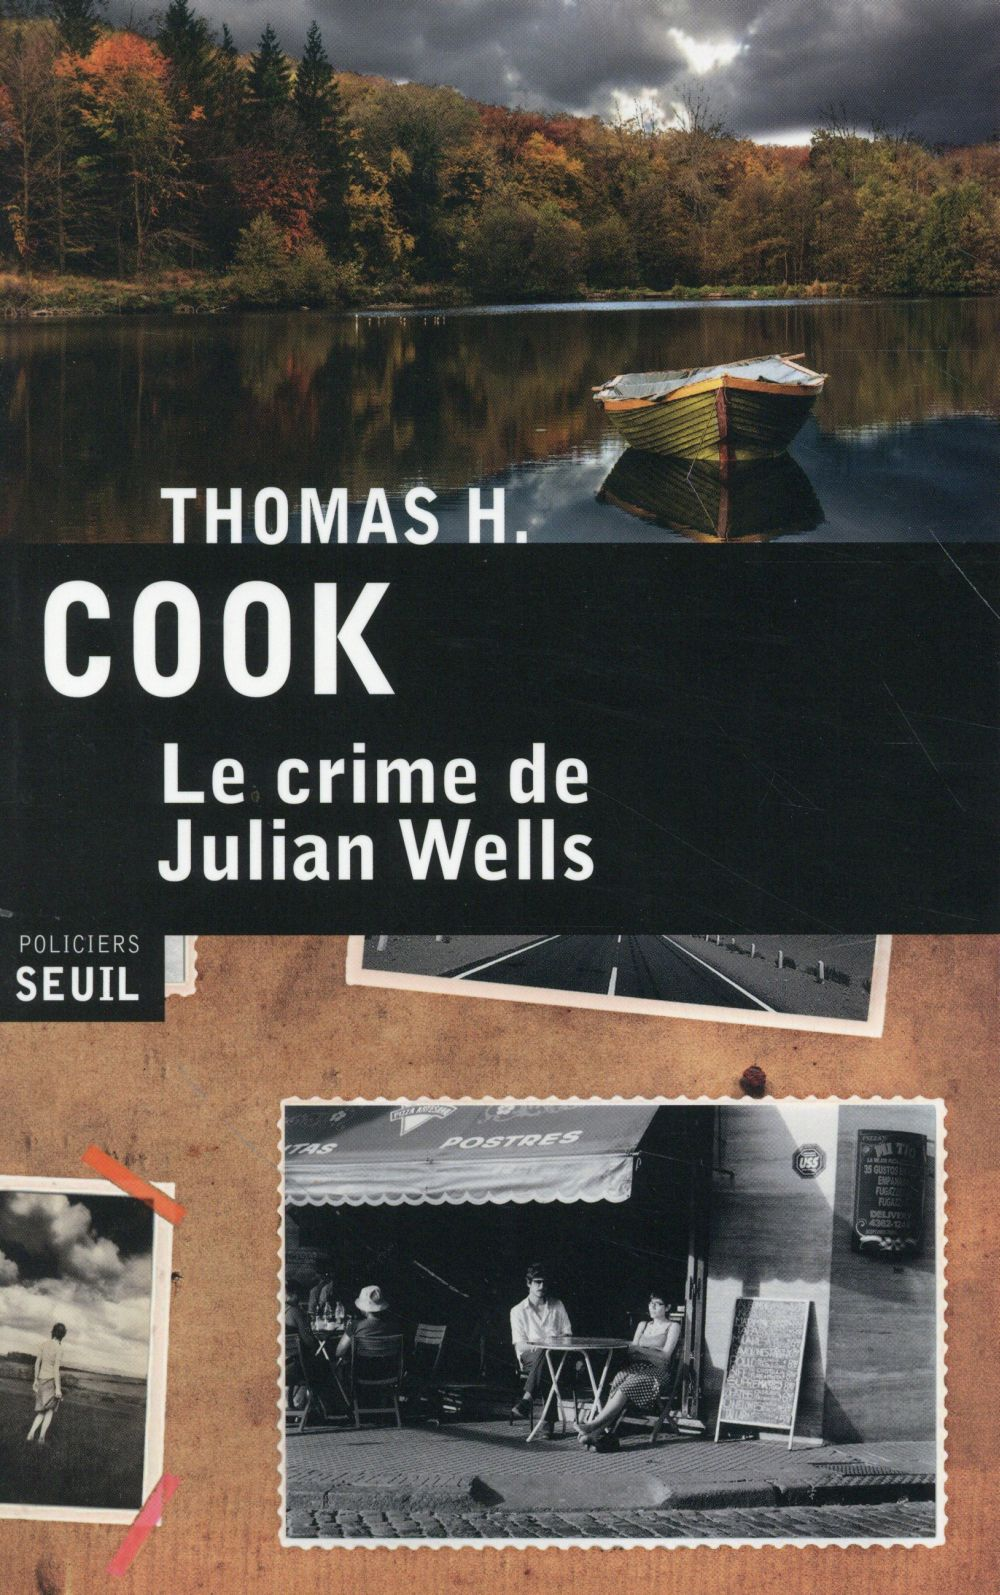 Le crime de julian wells